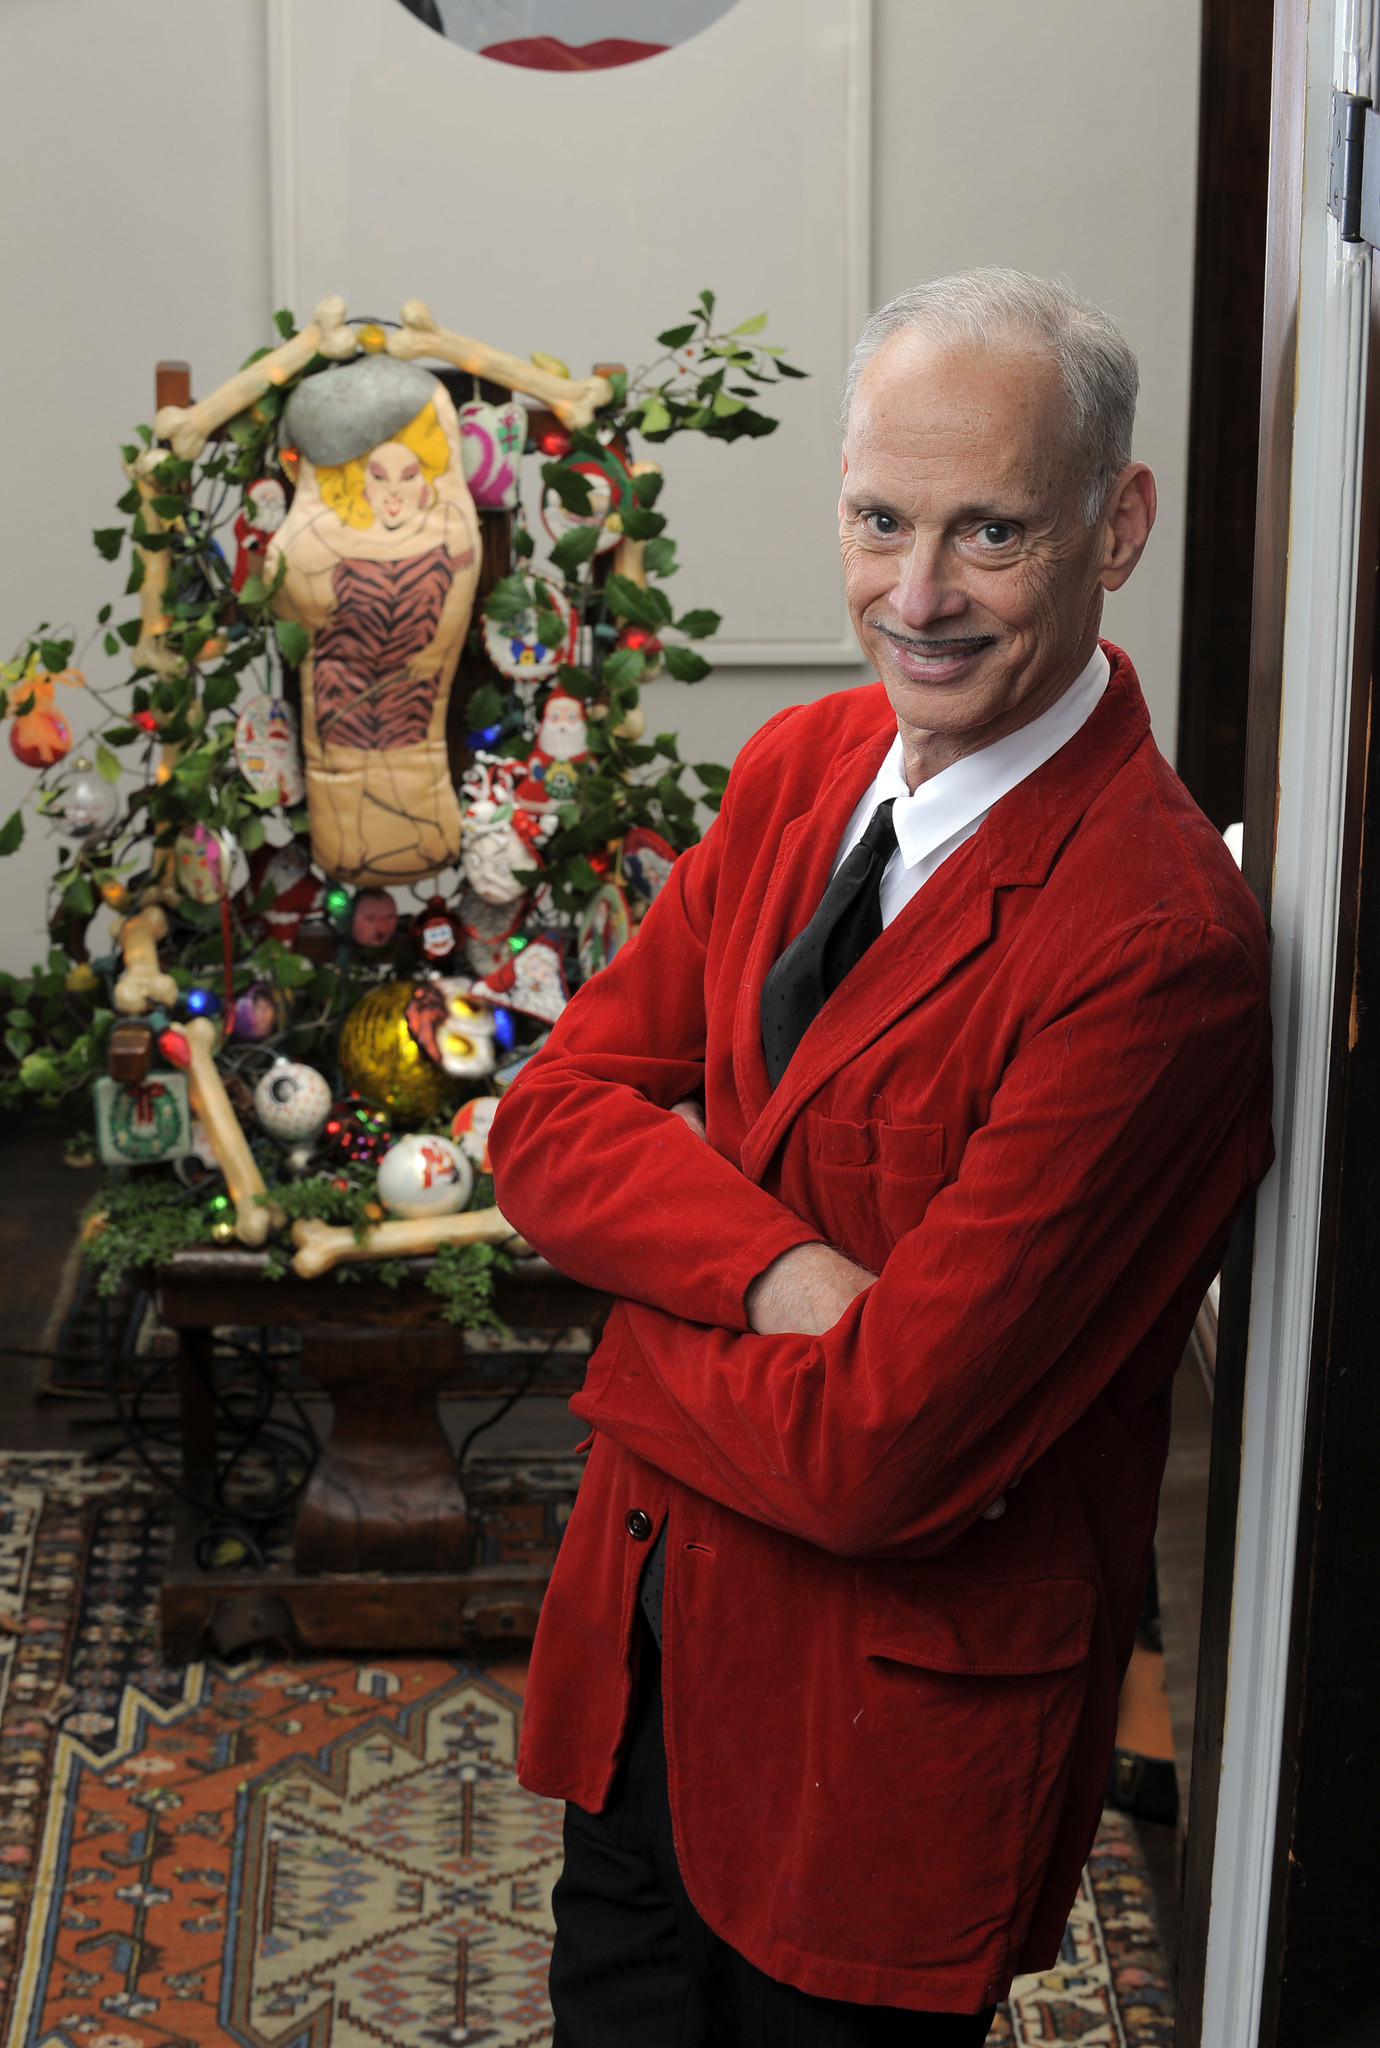 John Waters Christmas.A John Waters Christmas Baltimore Sun